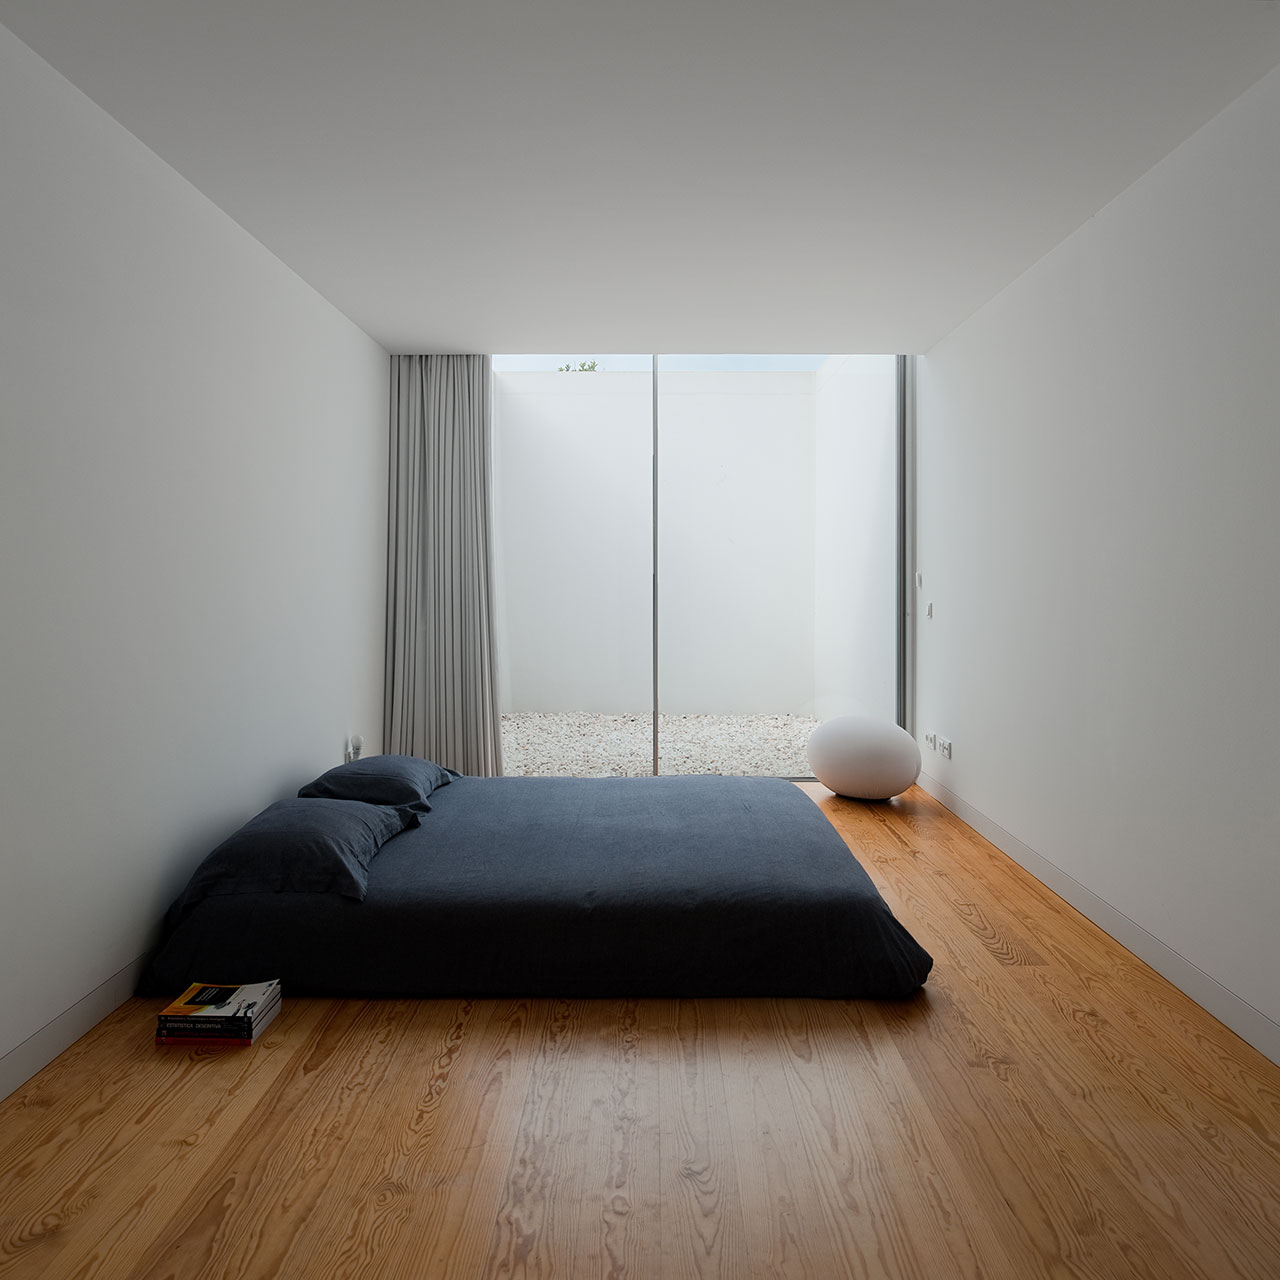 Cover and concealment house in leiria by aires mateus for Minimalist bedding ideas